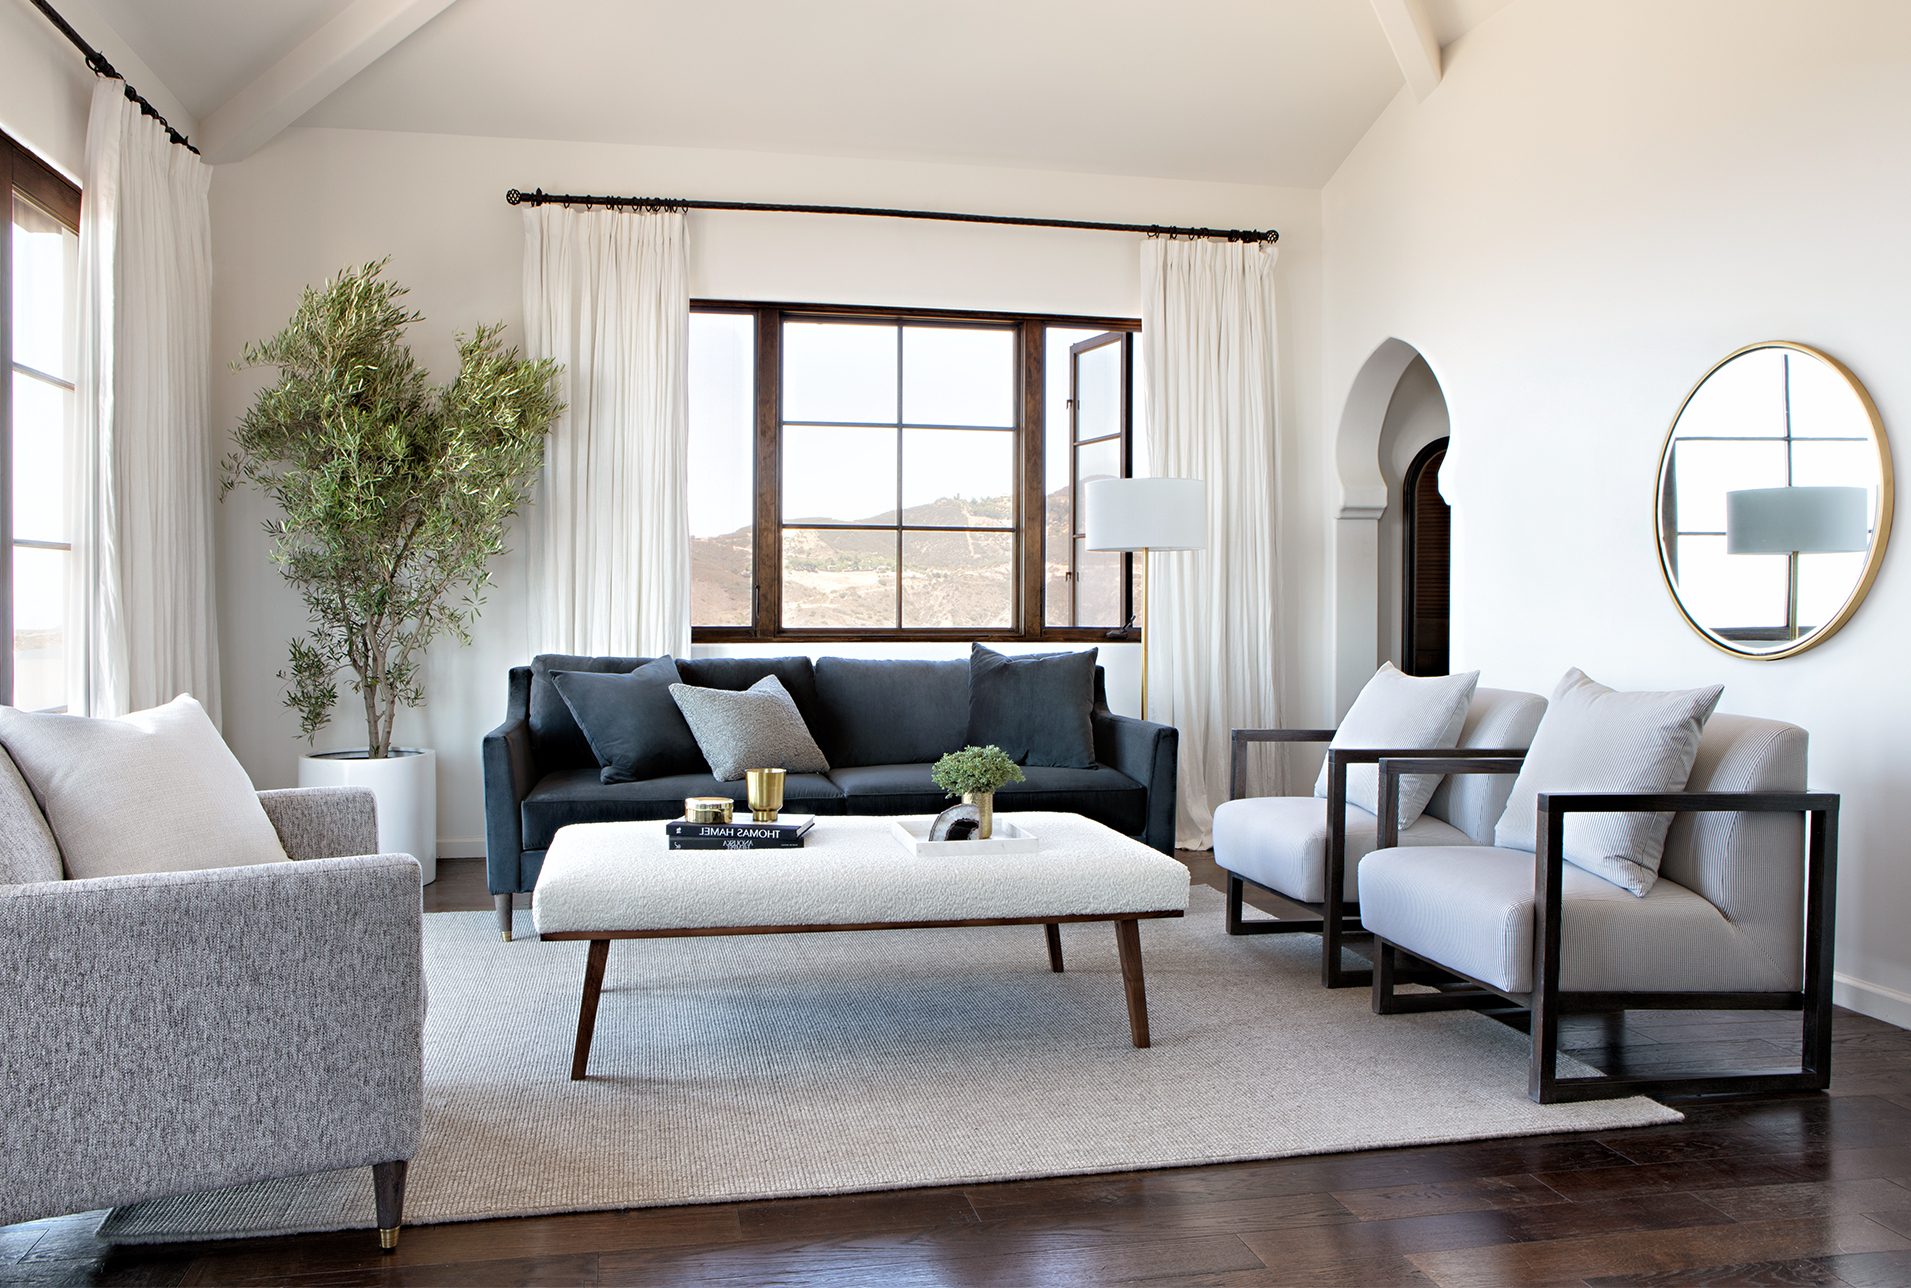 Ames Arm Sofa Chairs By Nate Berkus And Jeremiah Brent Regarding Popular Ames Arm Chairnate Berkus And Jeremiah Brent (View 3 of 20)